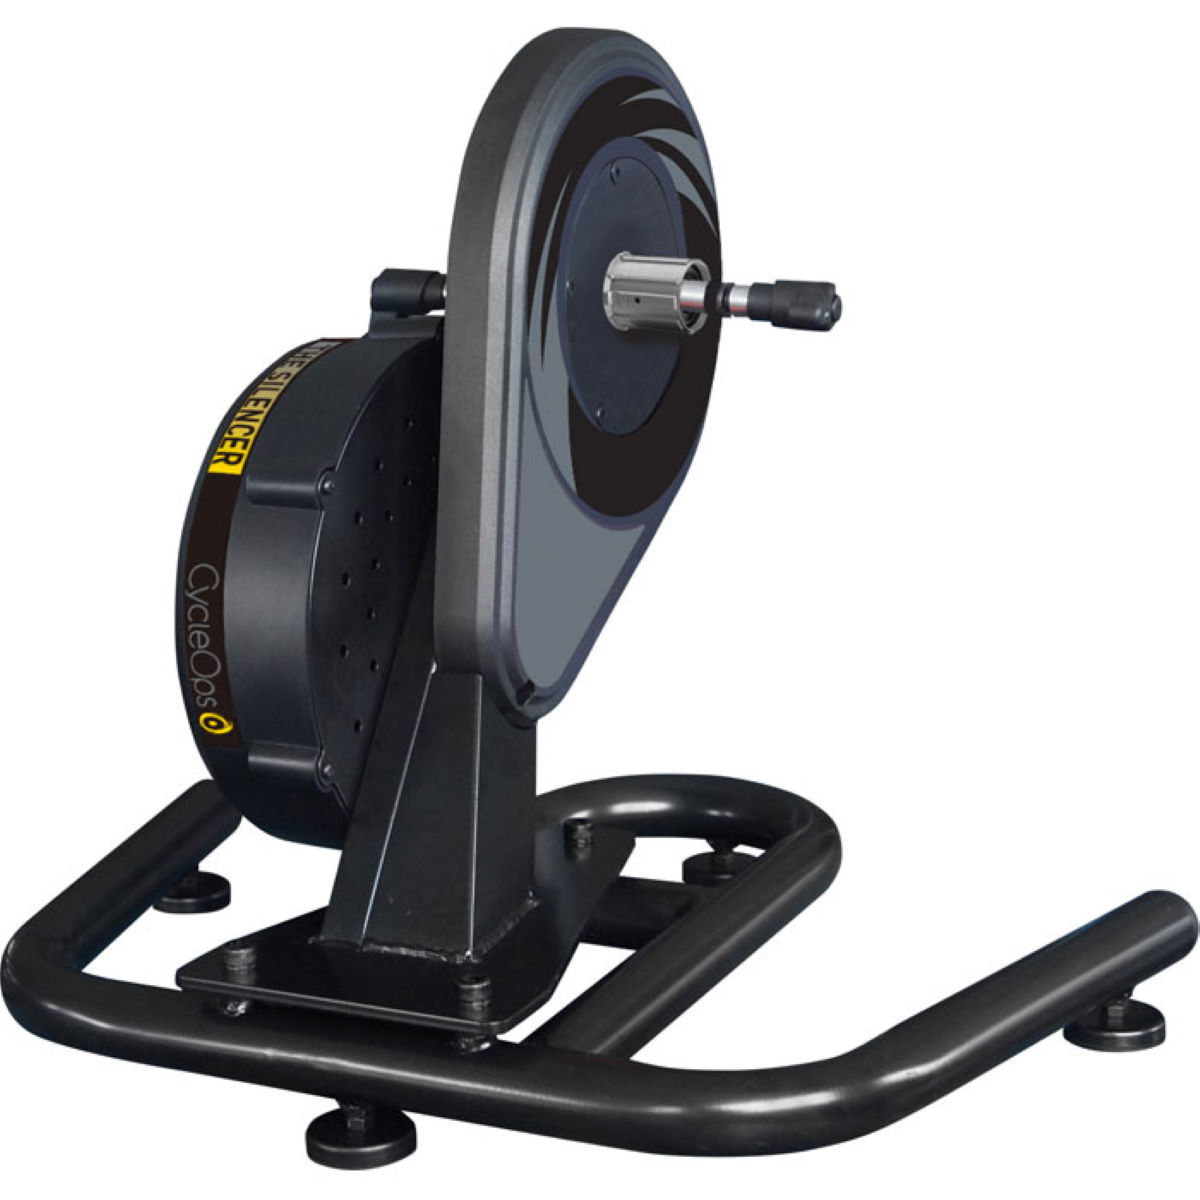 Home Trainer CycleOps Silencer Direct Drive Mag - Taille unique Noir Home Trainer et rouleaux